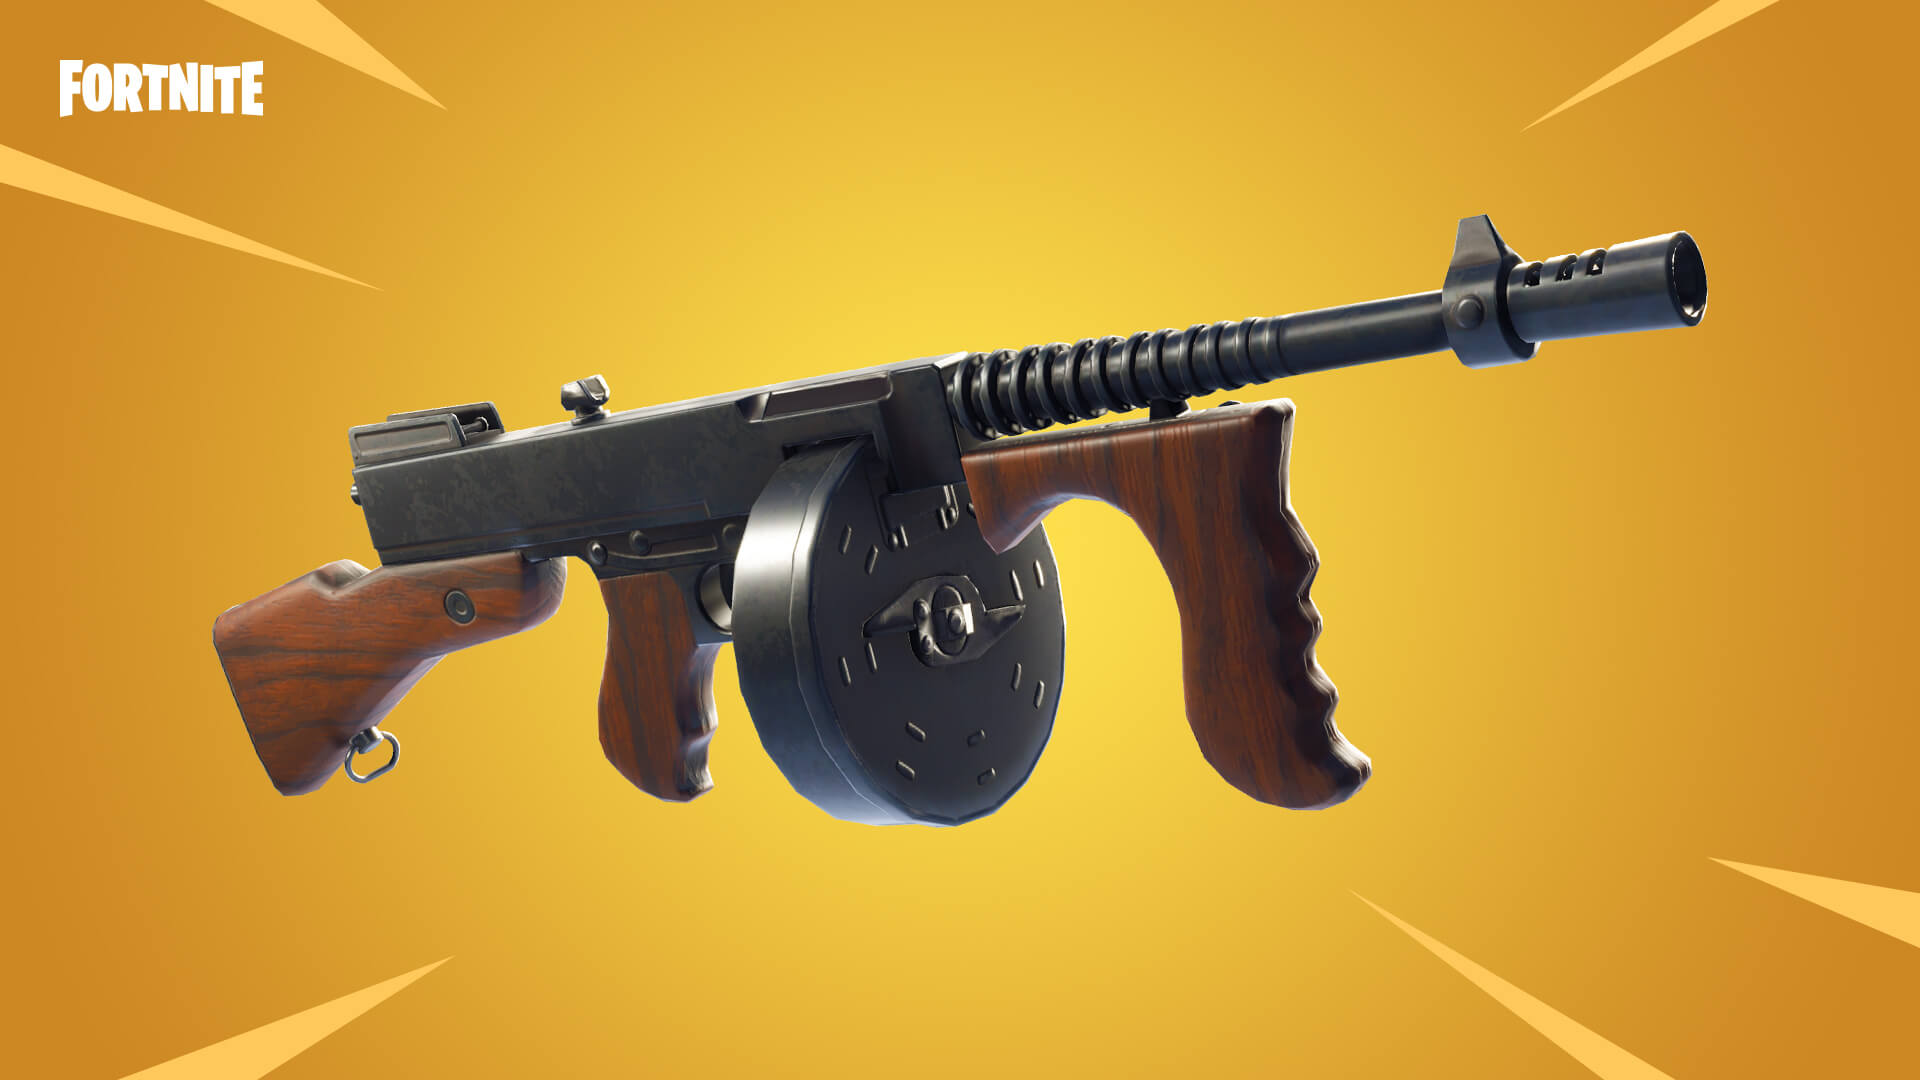 Drum gun Fortnite